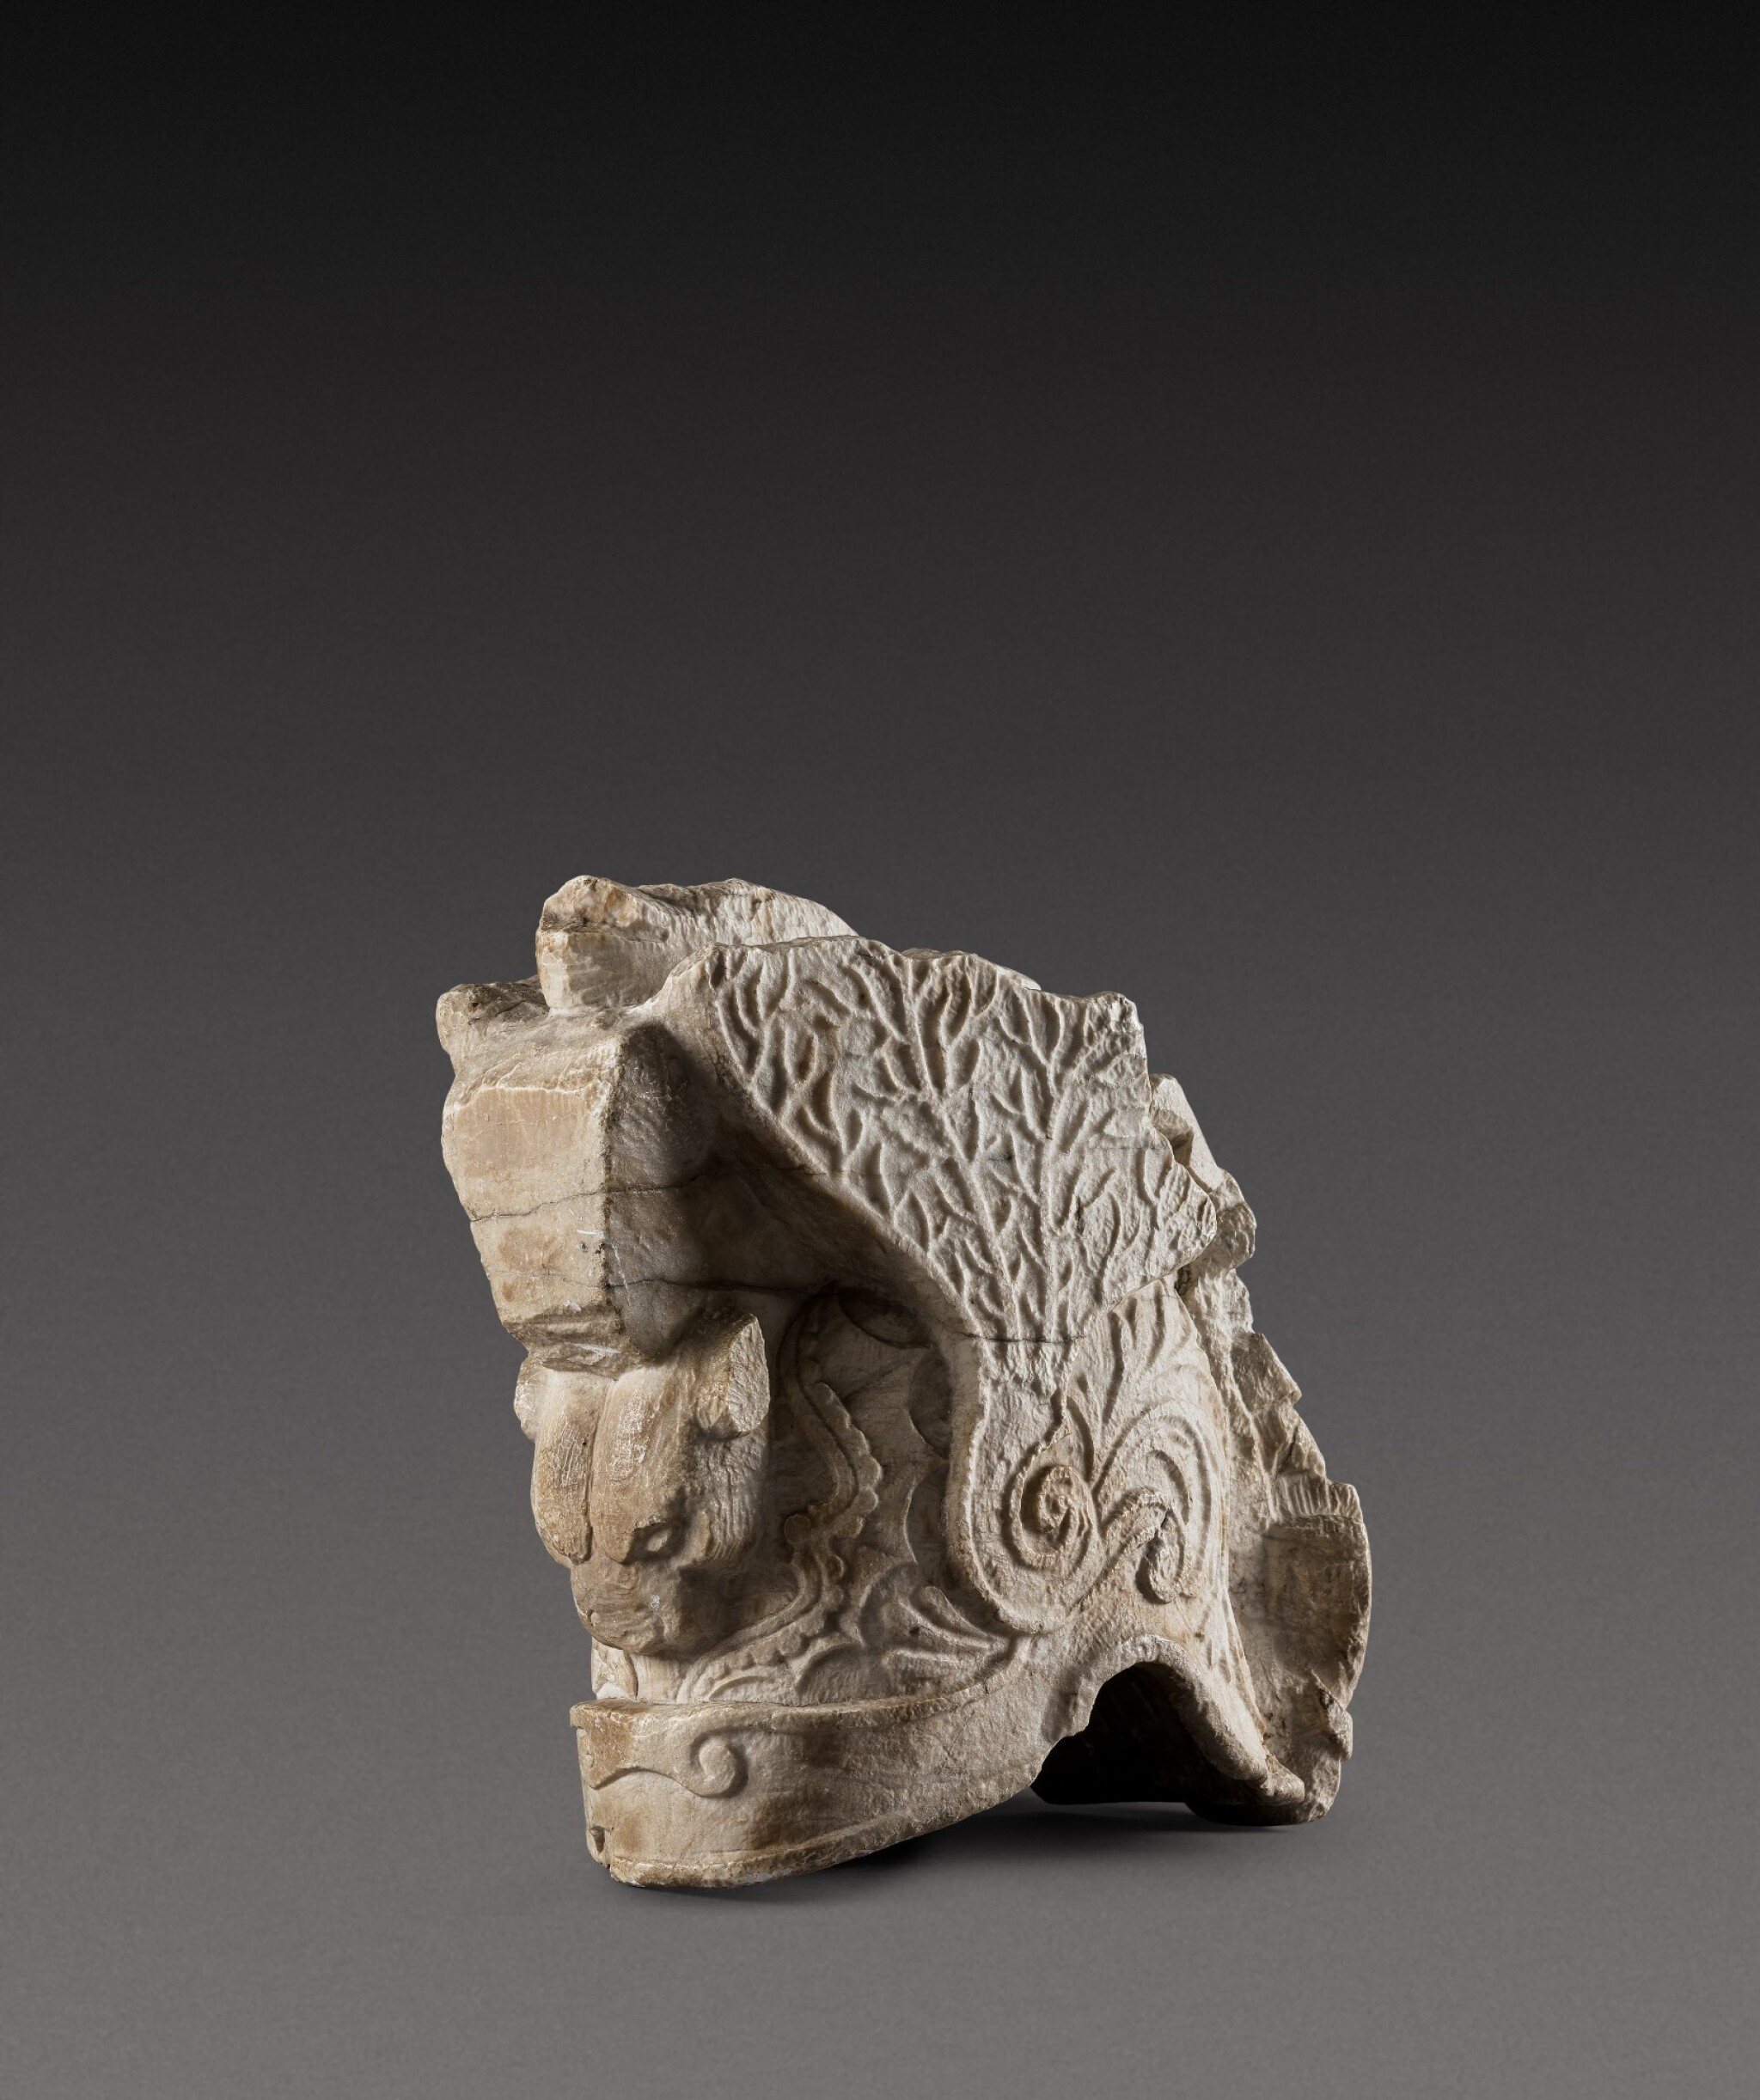 View 1 of Lot 156. Southern Netherlandish, late 16th/ early 17th century | Helmet Fragment.